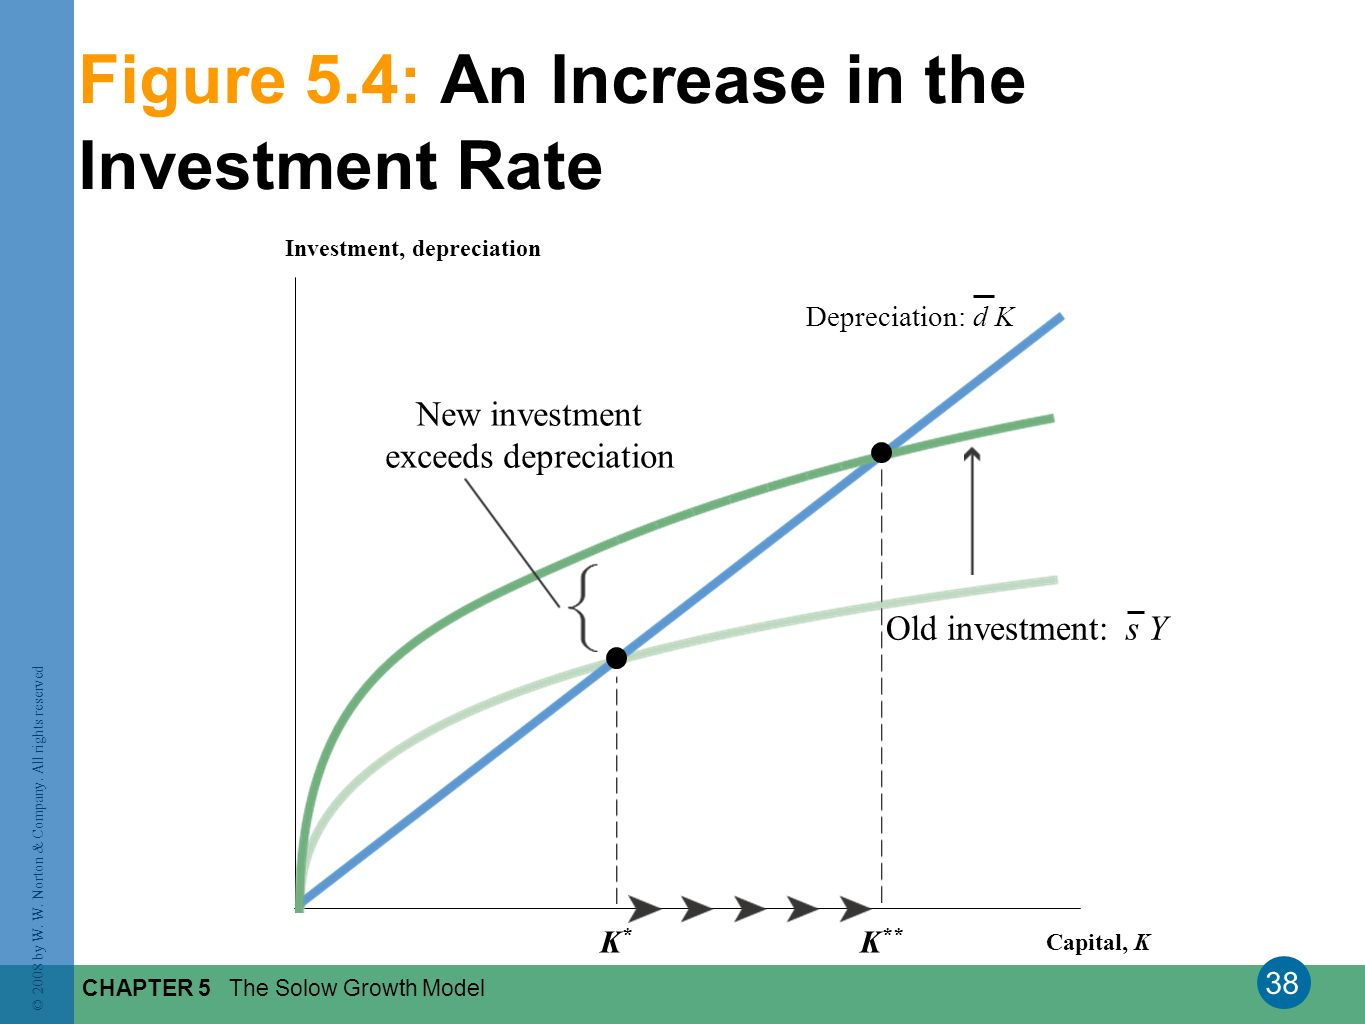 Figure 5.4: An Increase in the Investment Rate